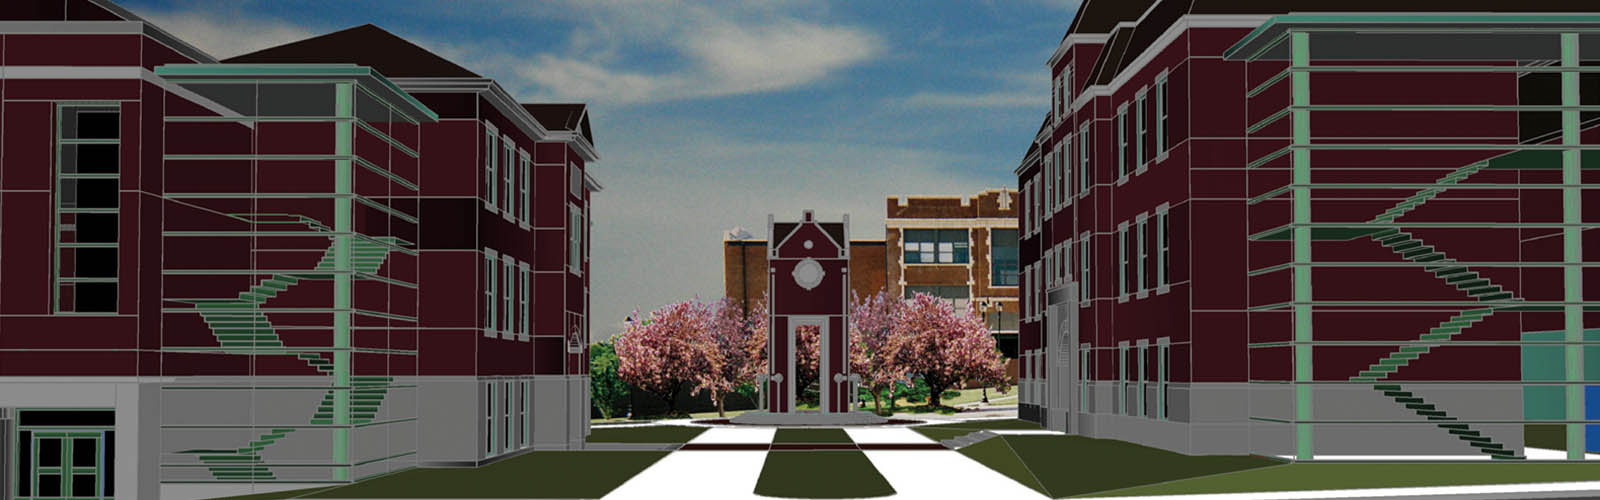 Labette Community College – Master Plan 1